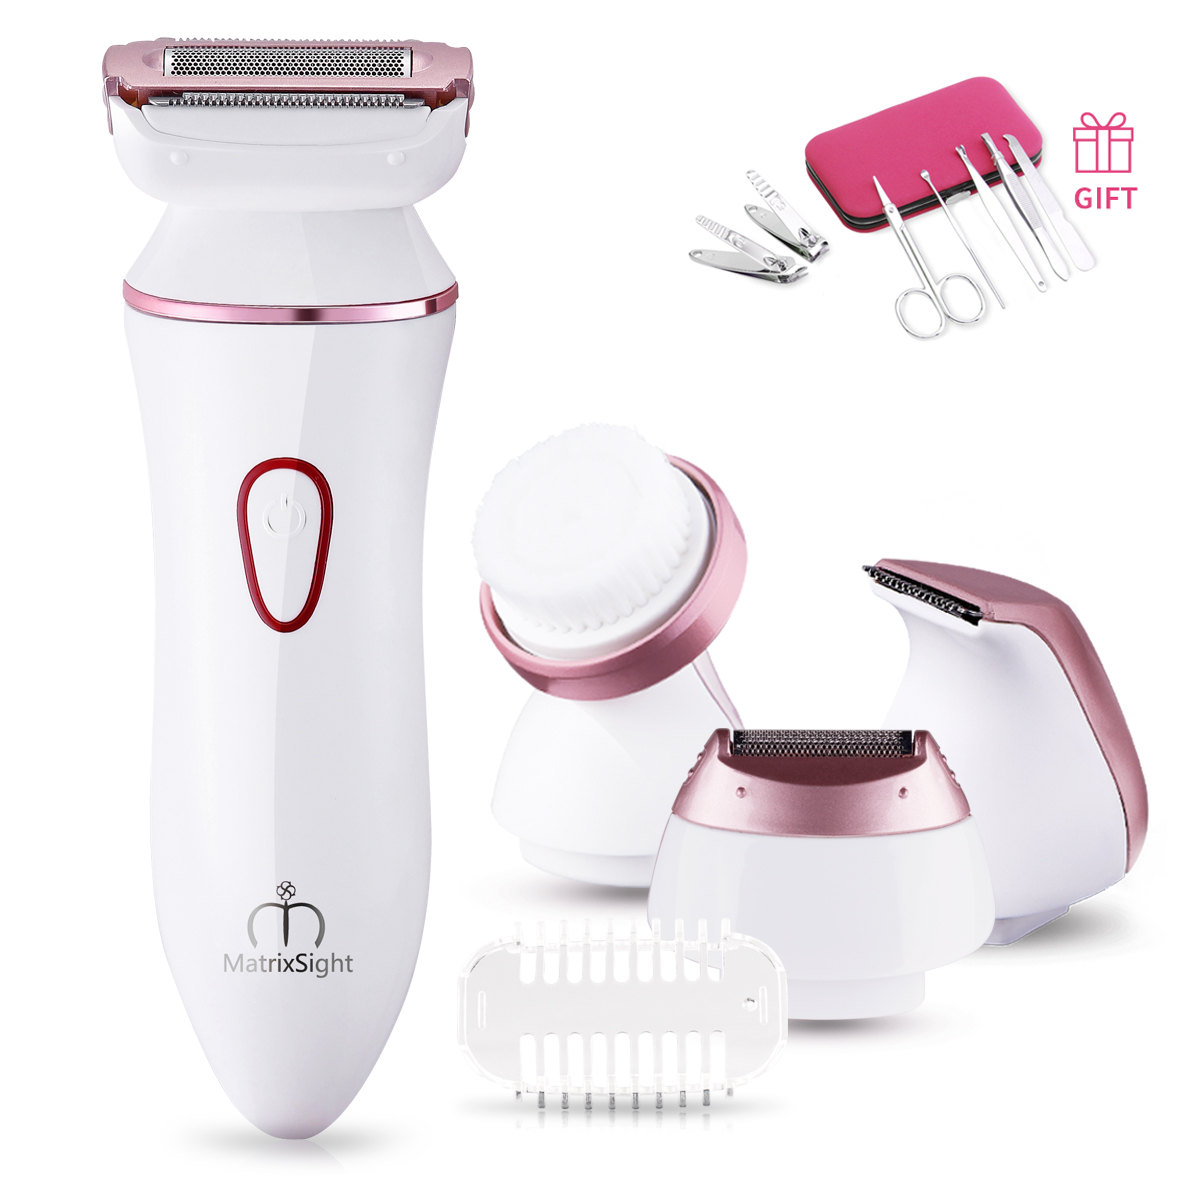 Ladies Electric Shaver Rechargeable Electric Razor for Women Bikini Trimmer Hair Removal for legs and Underarms, IPX7 Waterproof, Portable Cordless Design, 4 Types of Heads (Upgraded Version)